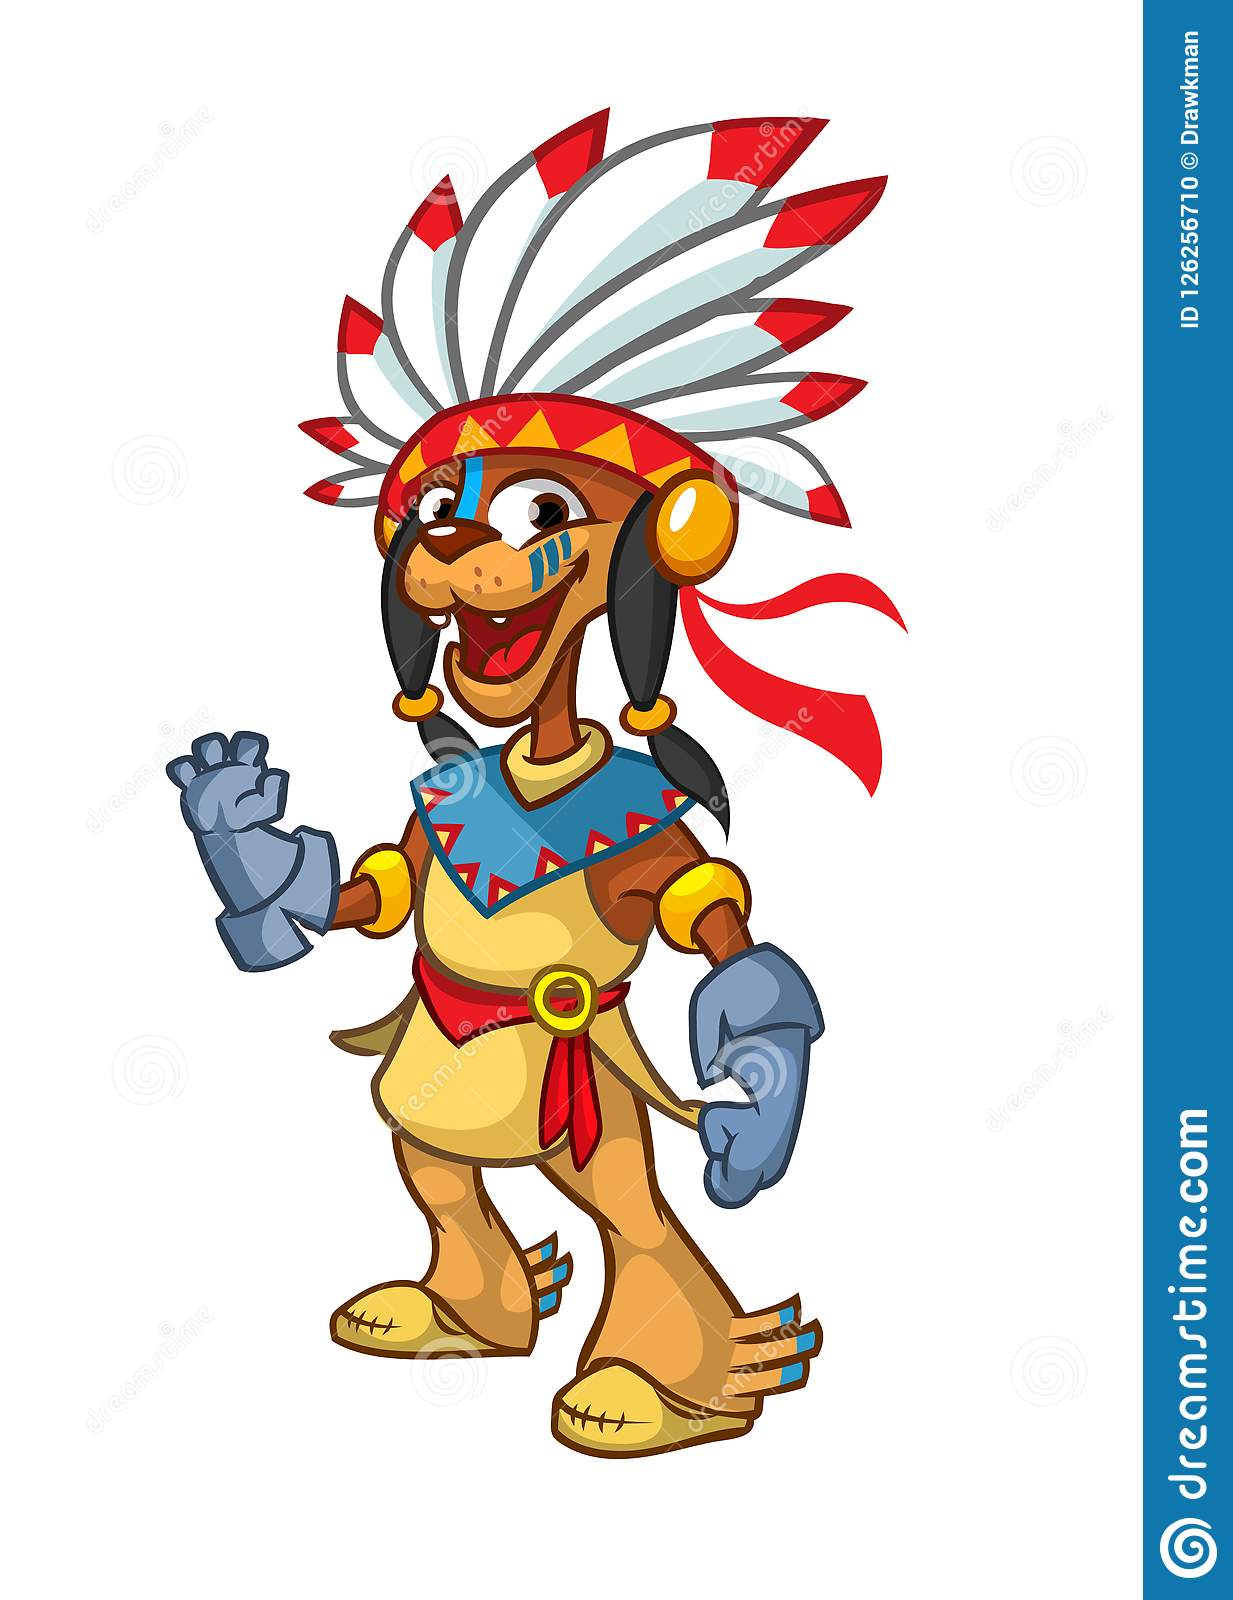 hight resolution of cartoon native american indian character illustration clipart